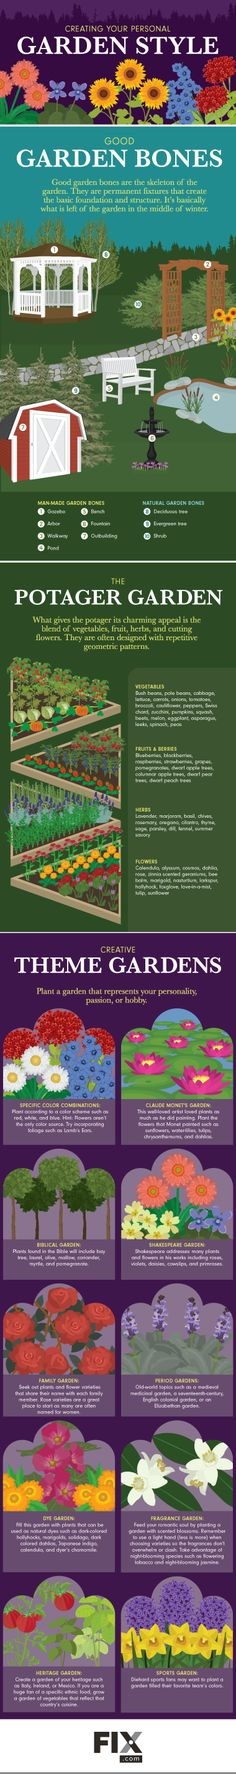 Design Your Garden in Traditional or Modern Style | Fix.com